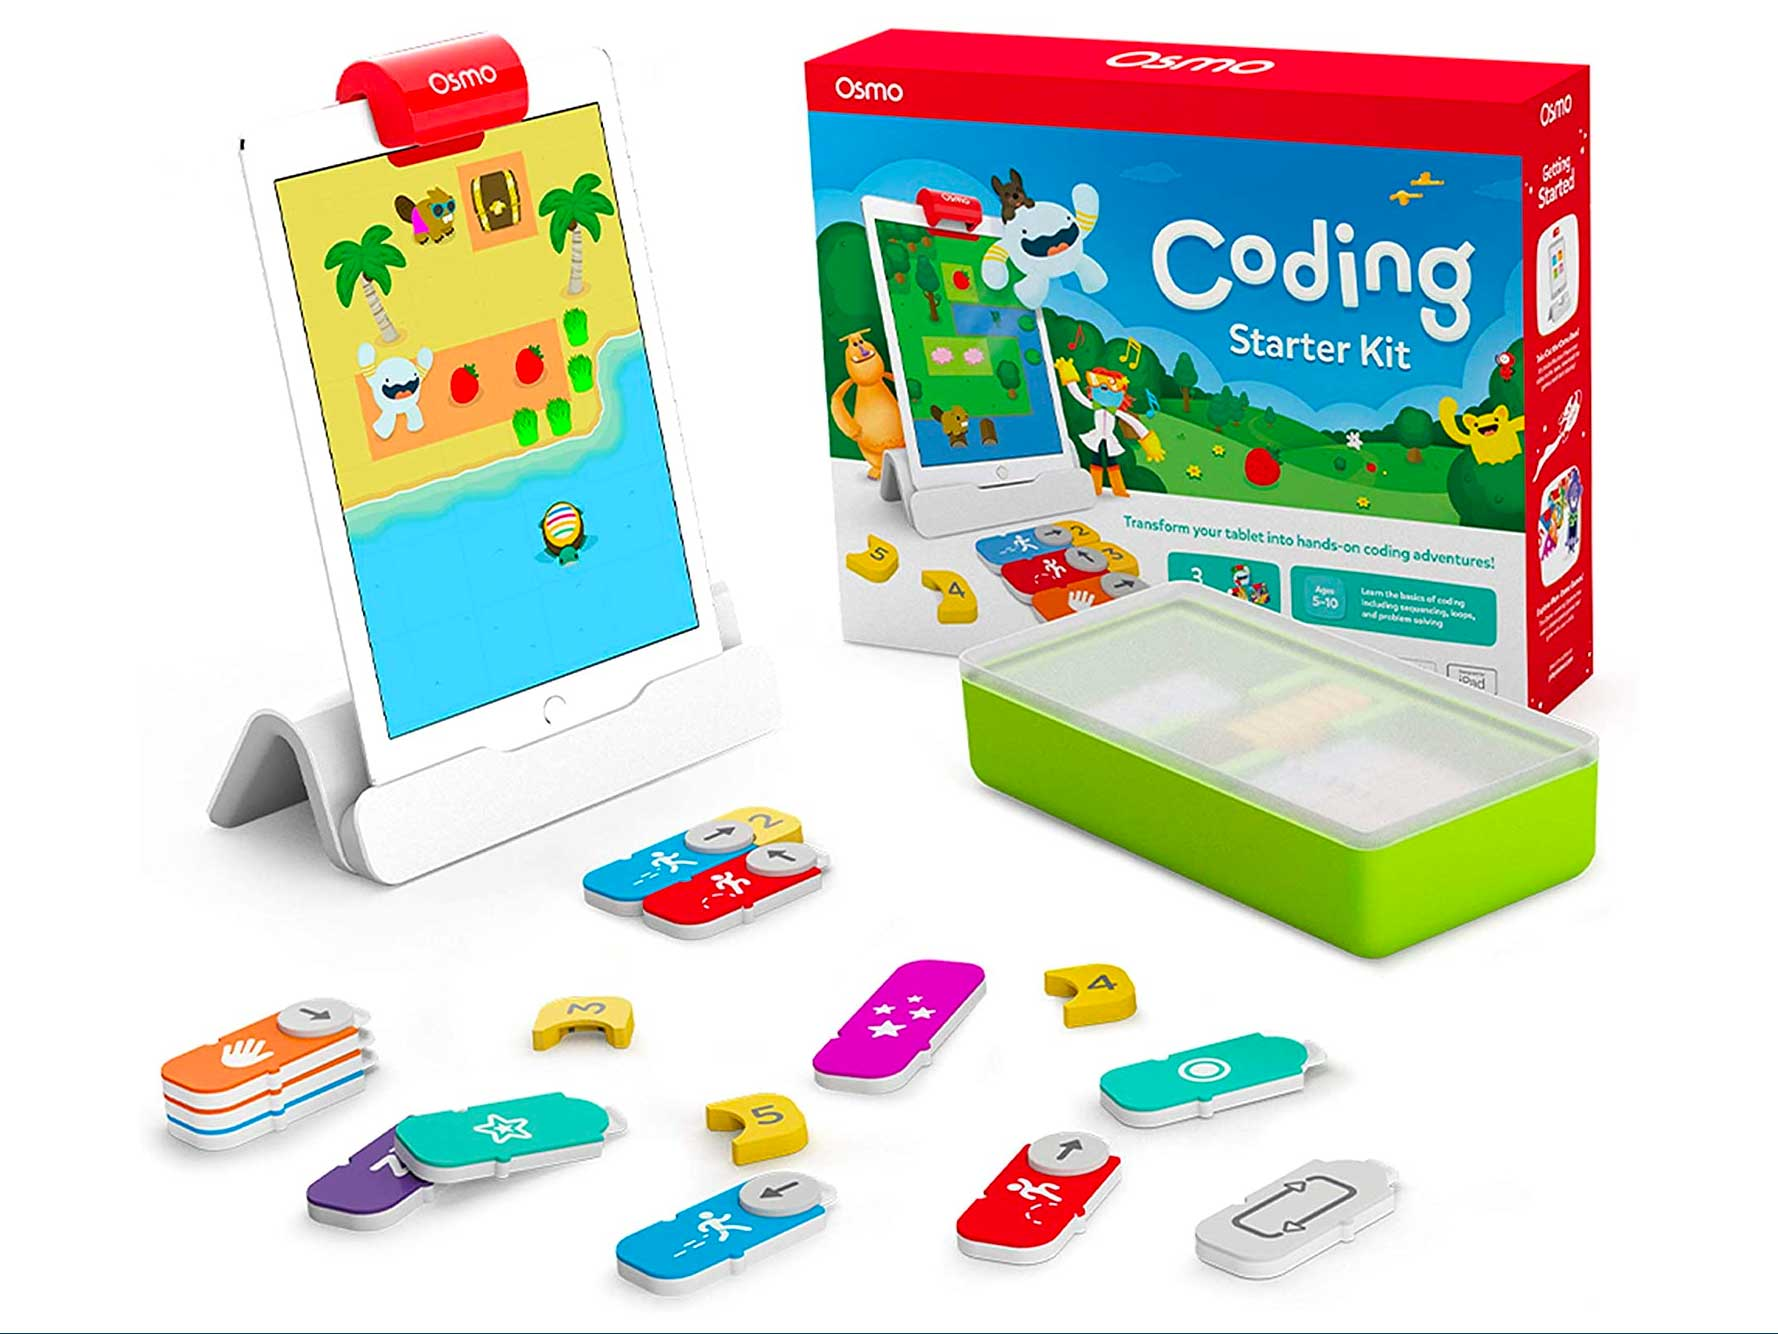 Osmo - Coding Starter Kit for iPad - 3 Educational Learning Games - Ages 5-10+ - Learn to Code, Coding Basics & Coding Puzzles